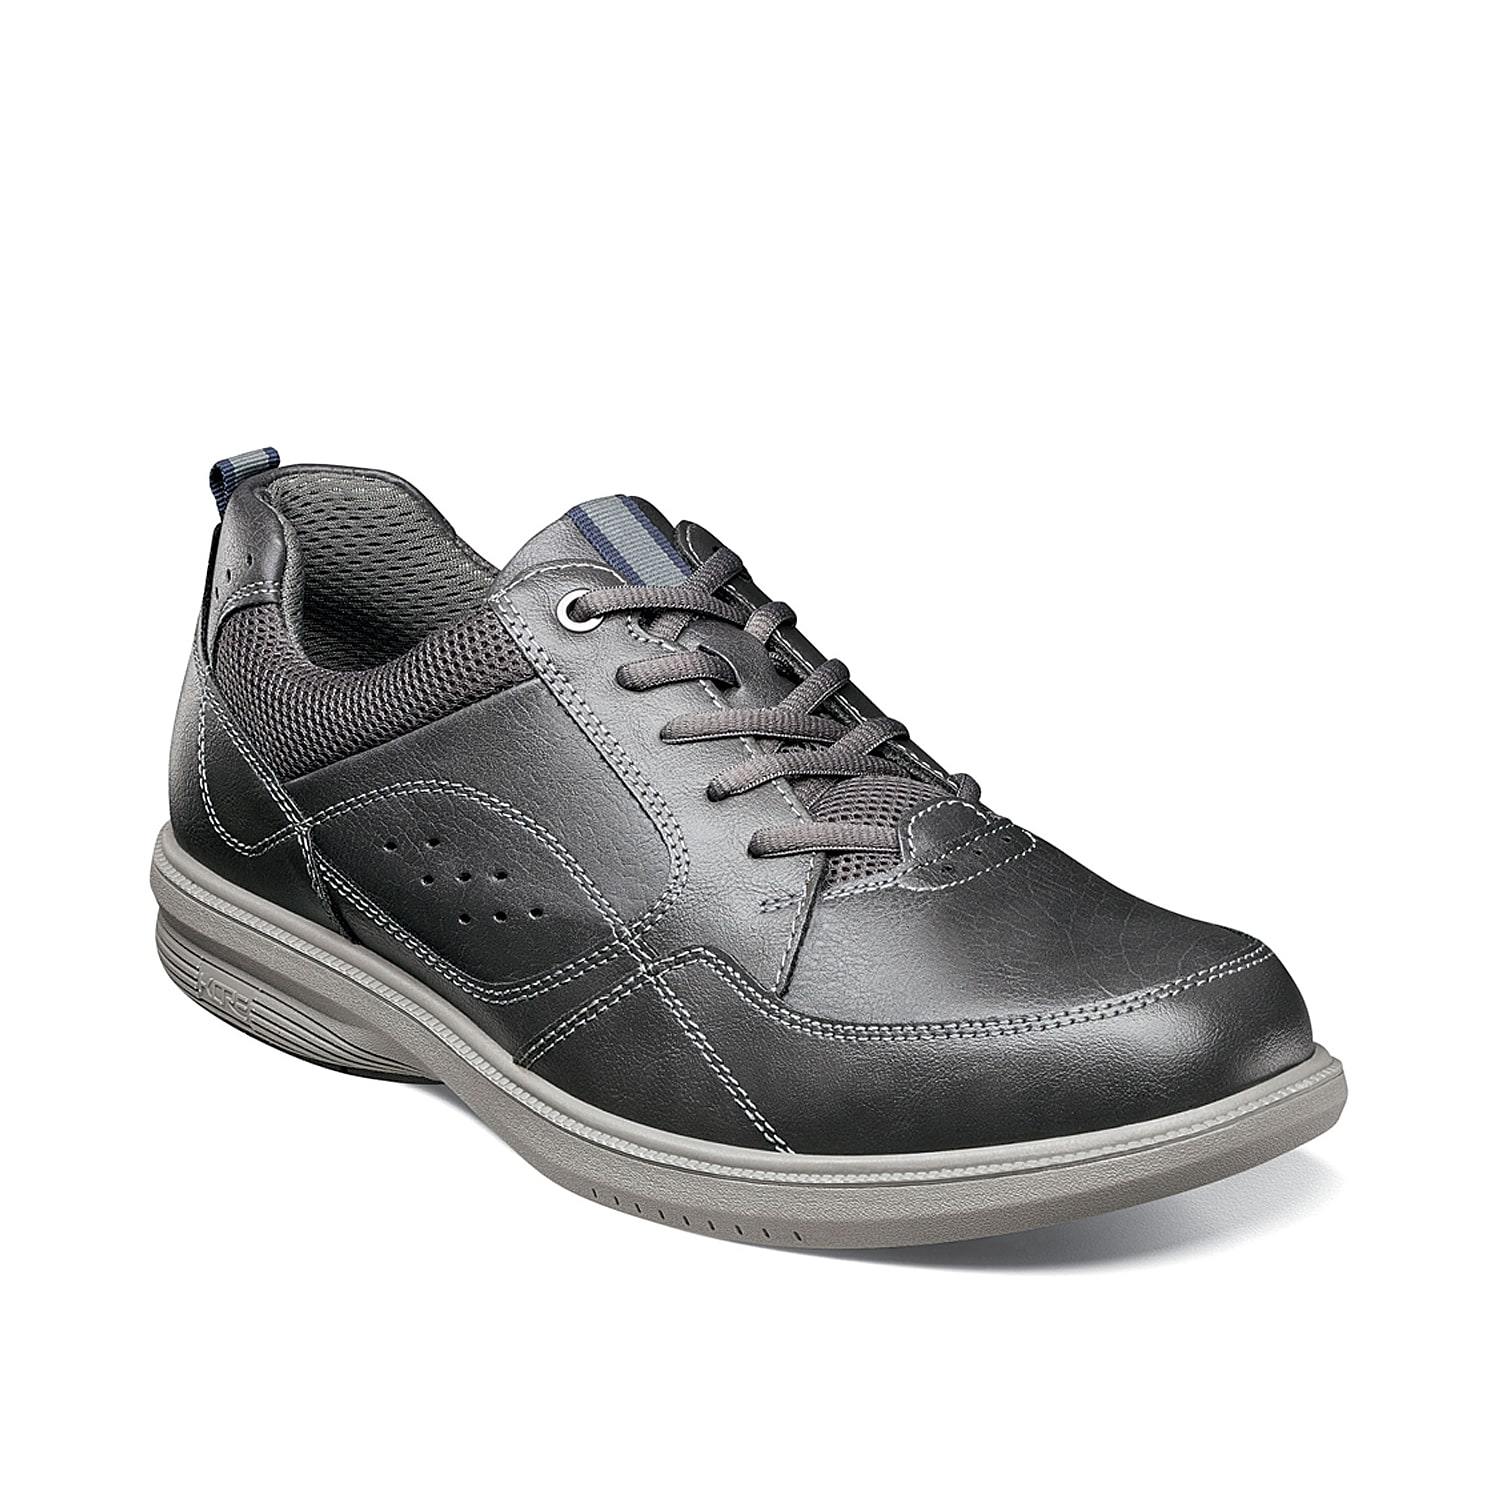 Walk the walk in the Kore Walk sneakers from Nunn Bush. These lace-ups feature a durable construction for lasting wear and are finished with a durable slip-resistant sole for extra stability.